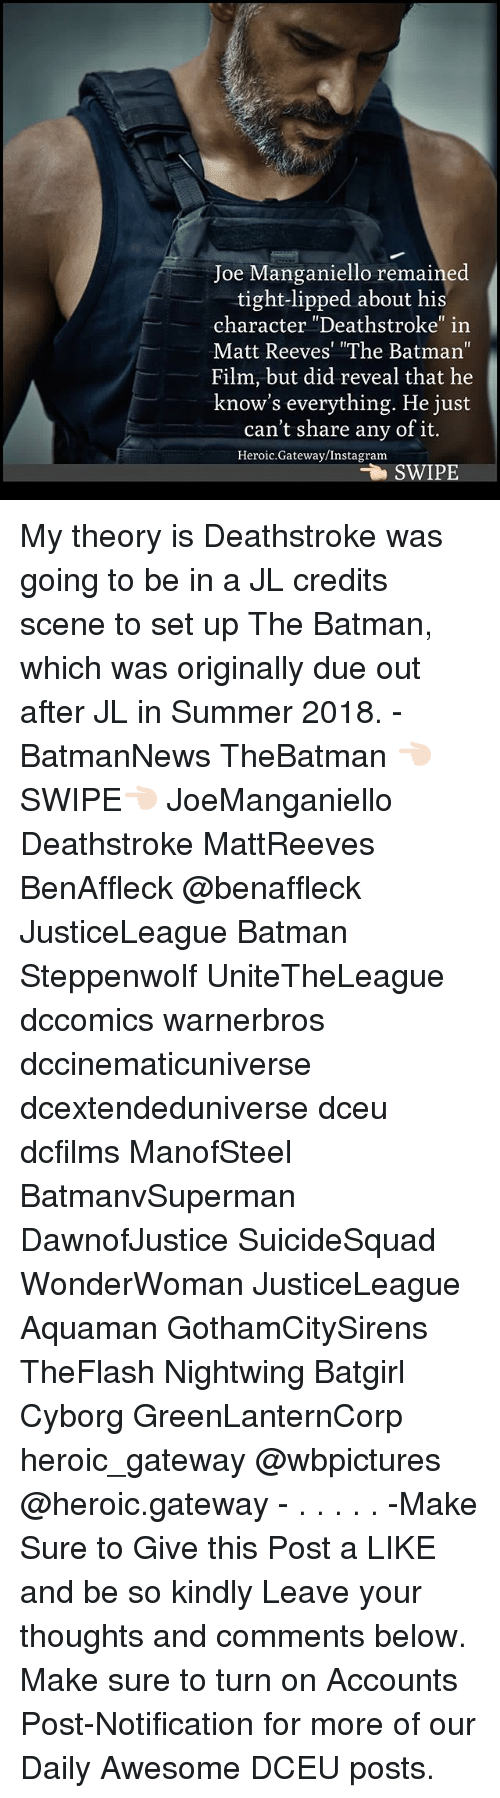 """Matt Reeves: Joe Manganiello remained  tight-lipped about his  character """"Deathstroke"""" in  Matt Reeves' """"The Batman""""  Film, but did reveal that he  know's everything. He just  can't share anv of it.  Heroic.Gateway/Instagram  SWIPE My theory is Deathstroke was going to be in a JL credits scene to set up The Batman, which was originally due out after JL in Summer 2018. - BatmanNews TheBatman 👈🏻SWIPE👈🏻 JoeManganiello Deathstroke MattReeves BenAffleck @benaffleck JusticeLeague Batman Steppenwolf UniteTheLeague dccomics warnerbros dccinematicuniverse dcextendeduniverse dceu dcfilms ManofSteel BatmanvSuperman DawnofJustice SuicideSquad WonderWoman JusticeLeague Aquaman GothamCitySirens TheFlash Nightwing Batgirl Cyborg GreenLanternCorp heroic_gateway @wbpictures @heroic.gateway - . . . . . -Make Sure to Give this Post a LIKE and be so kindly Leave your thoughts and comments below. Make sure to turn on Accounts Post-Notification for more of our Daily Awesome DCEU posts."""